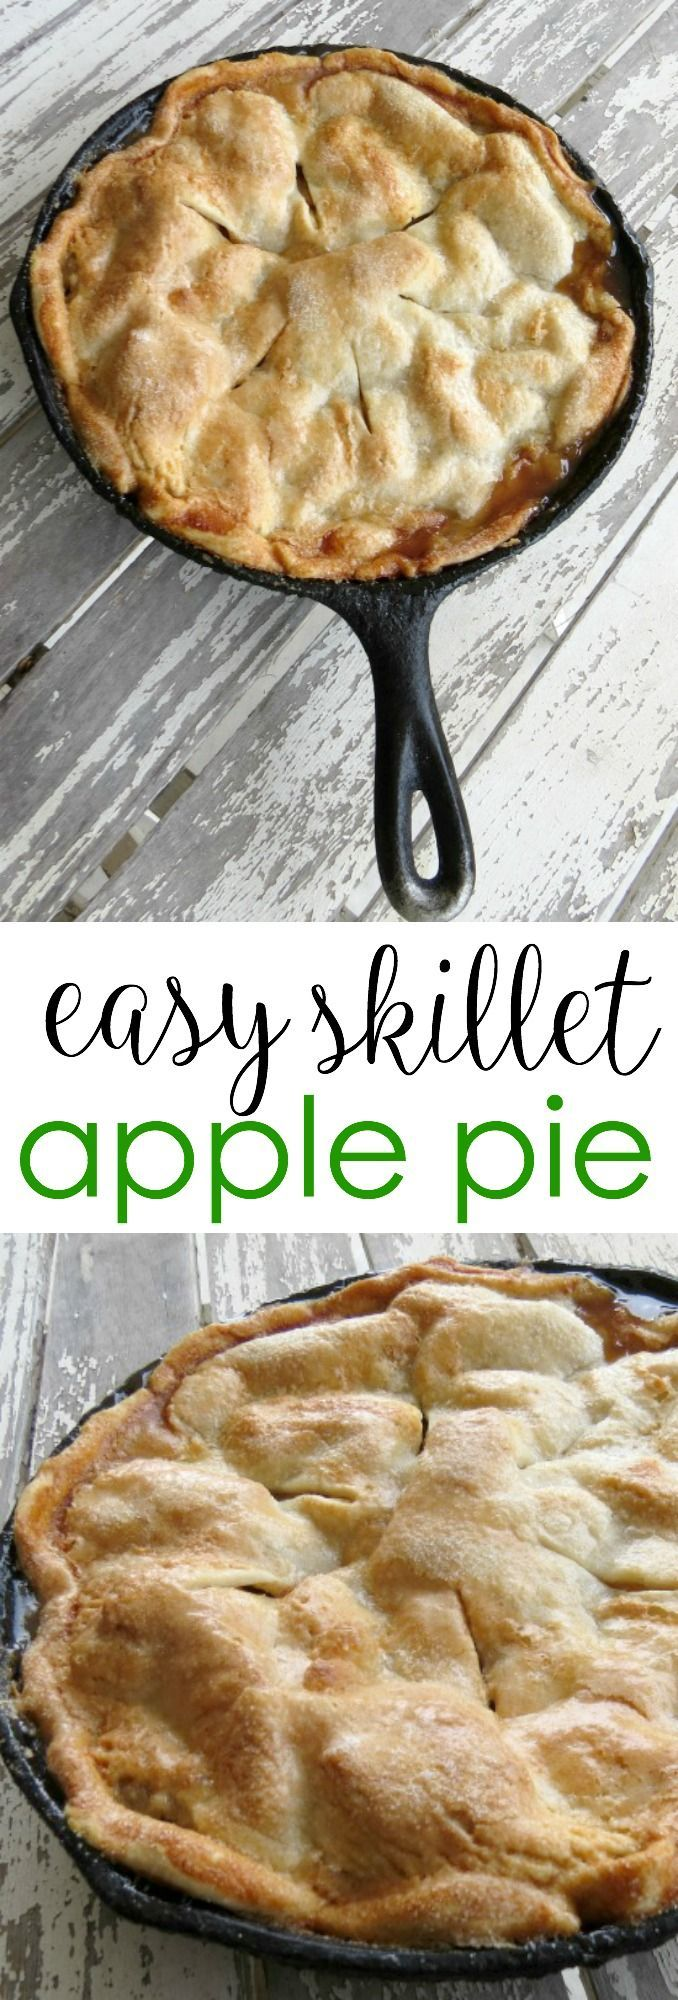 Easy Skillet Apple Pie is part of Skillet desserts - Surprise your family with this easy skillet apple pie recipe  It's baked in a cast iron skillet and covered in a sweet and flaky sugar and cinnamon crust